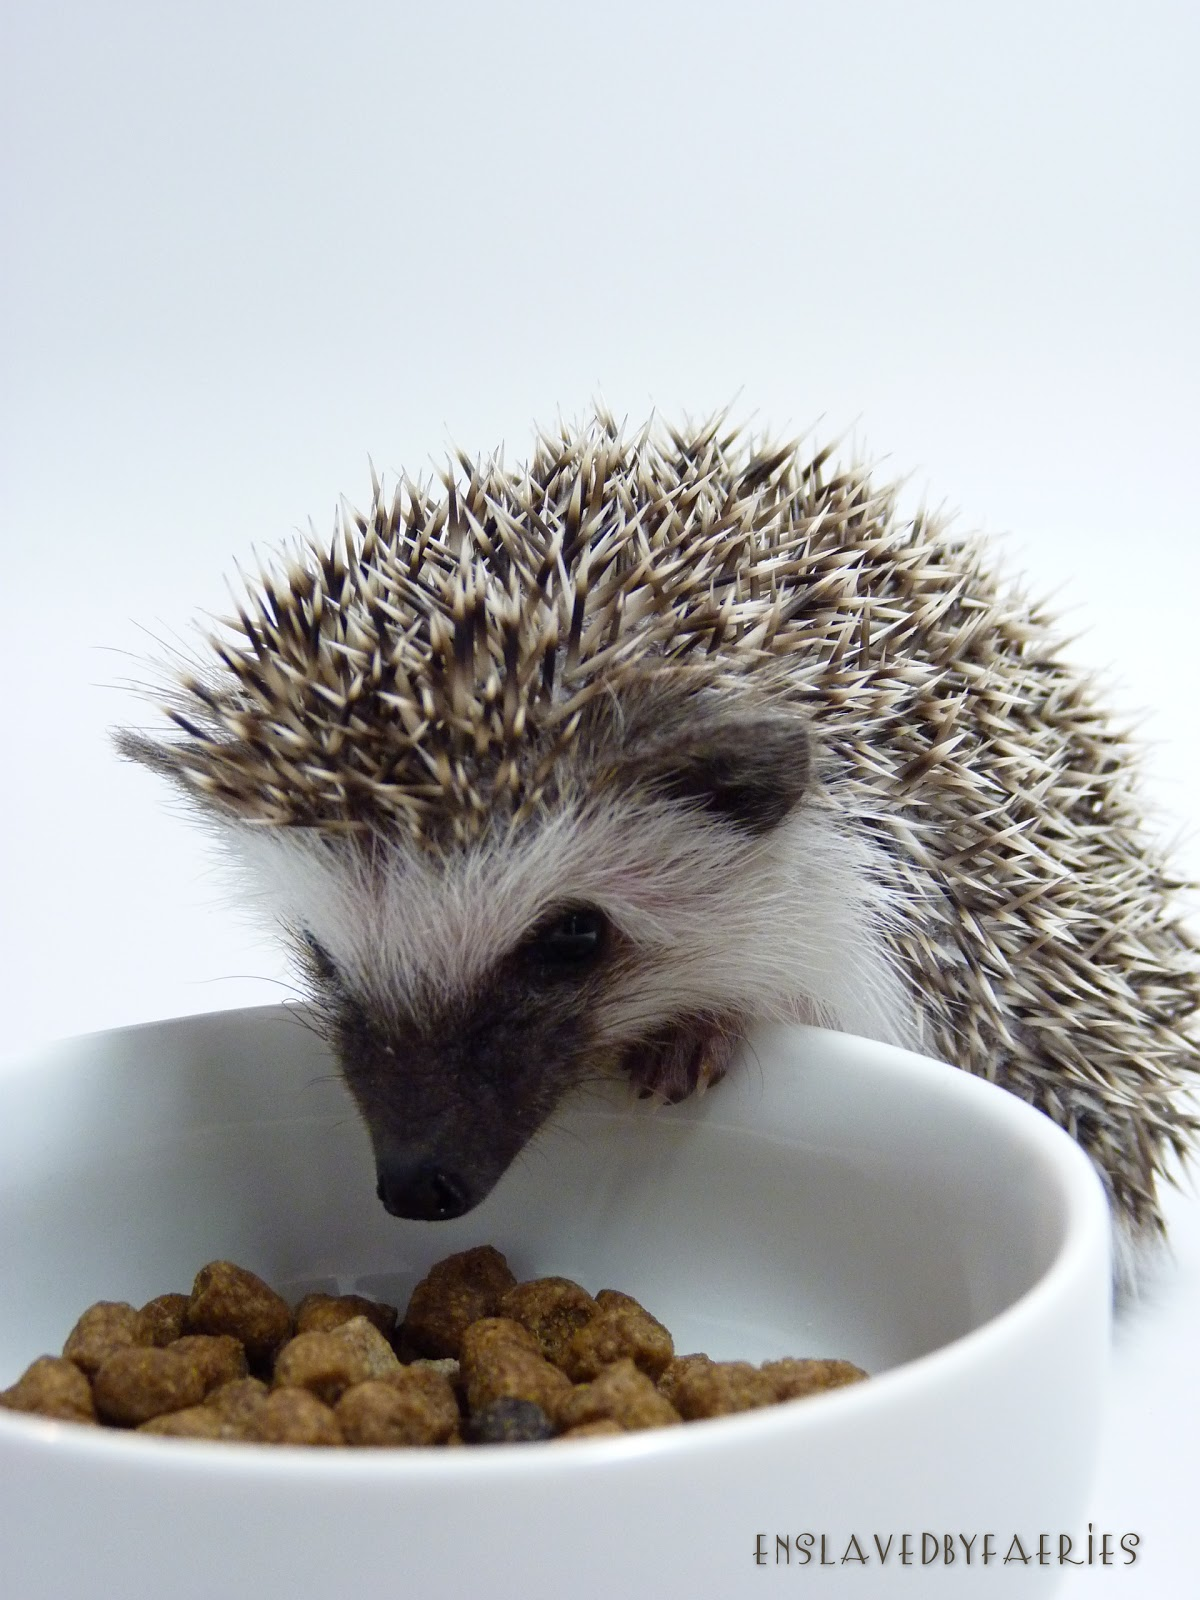 Cat Food For Hedgehogs